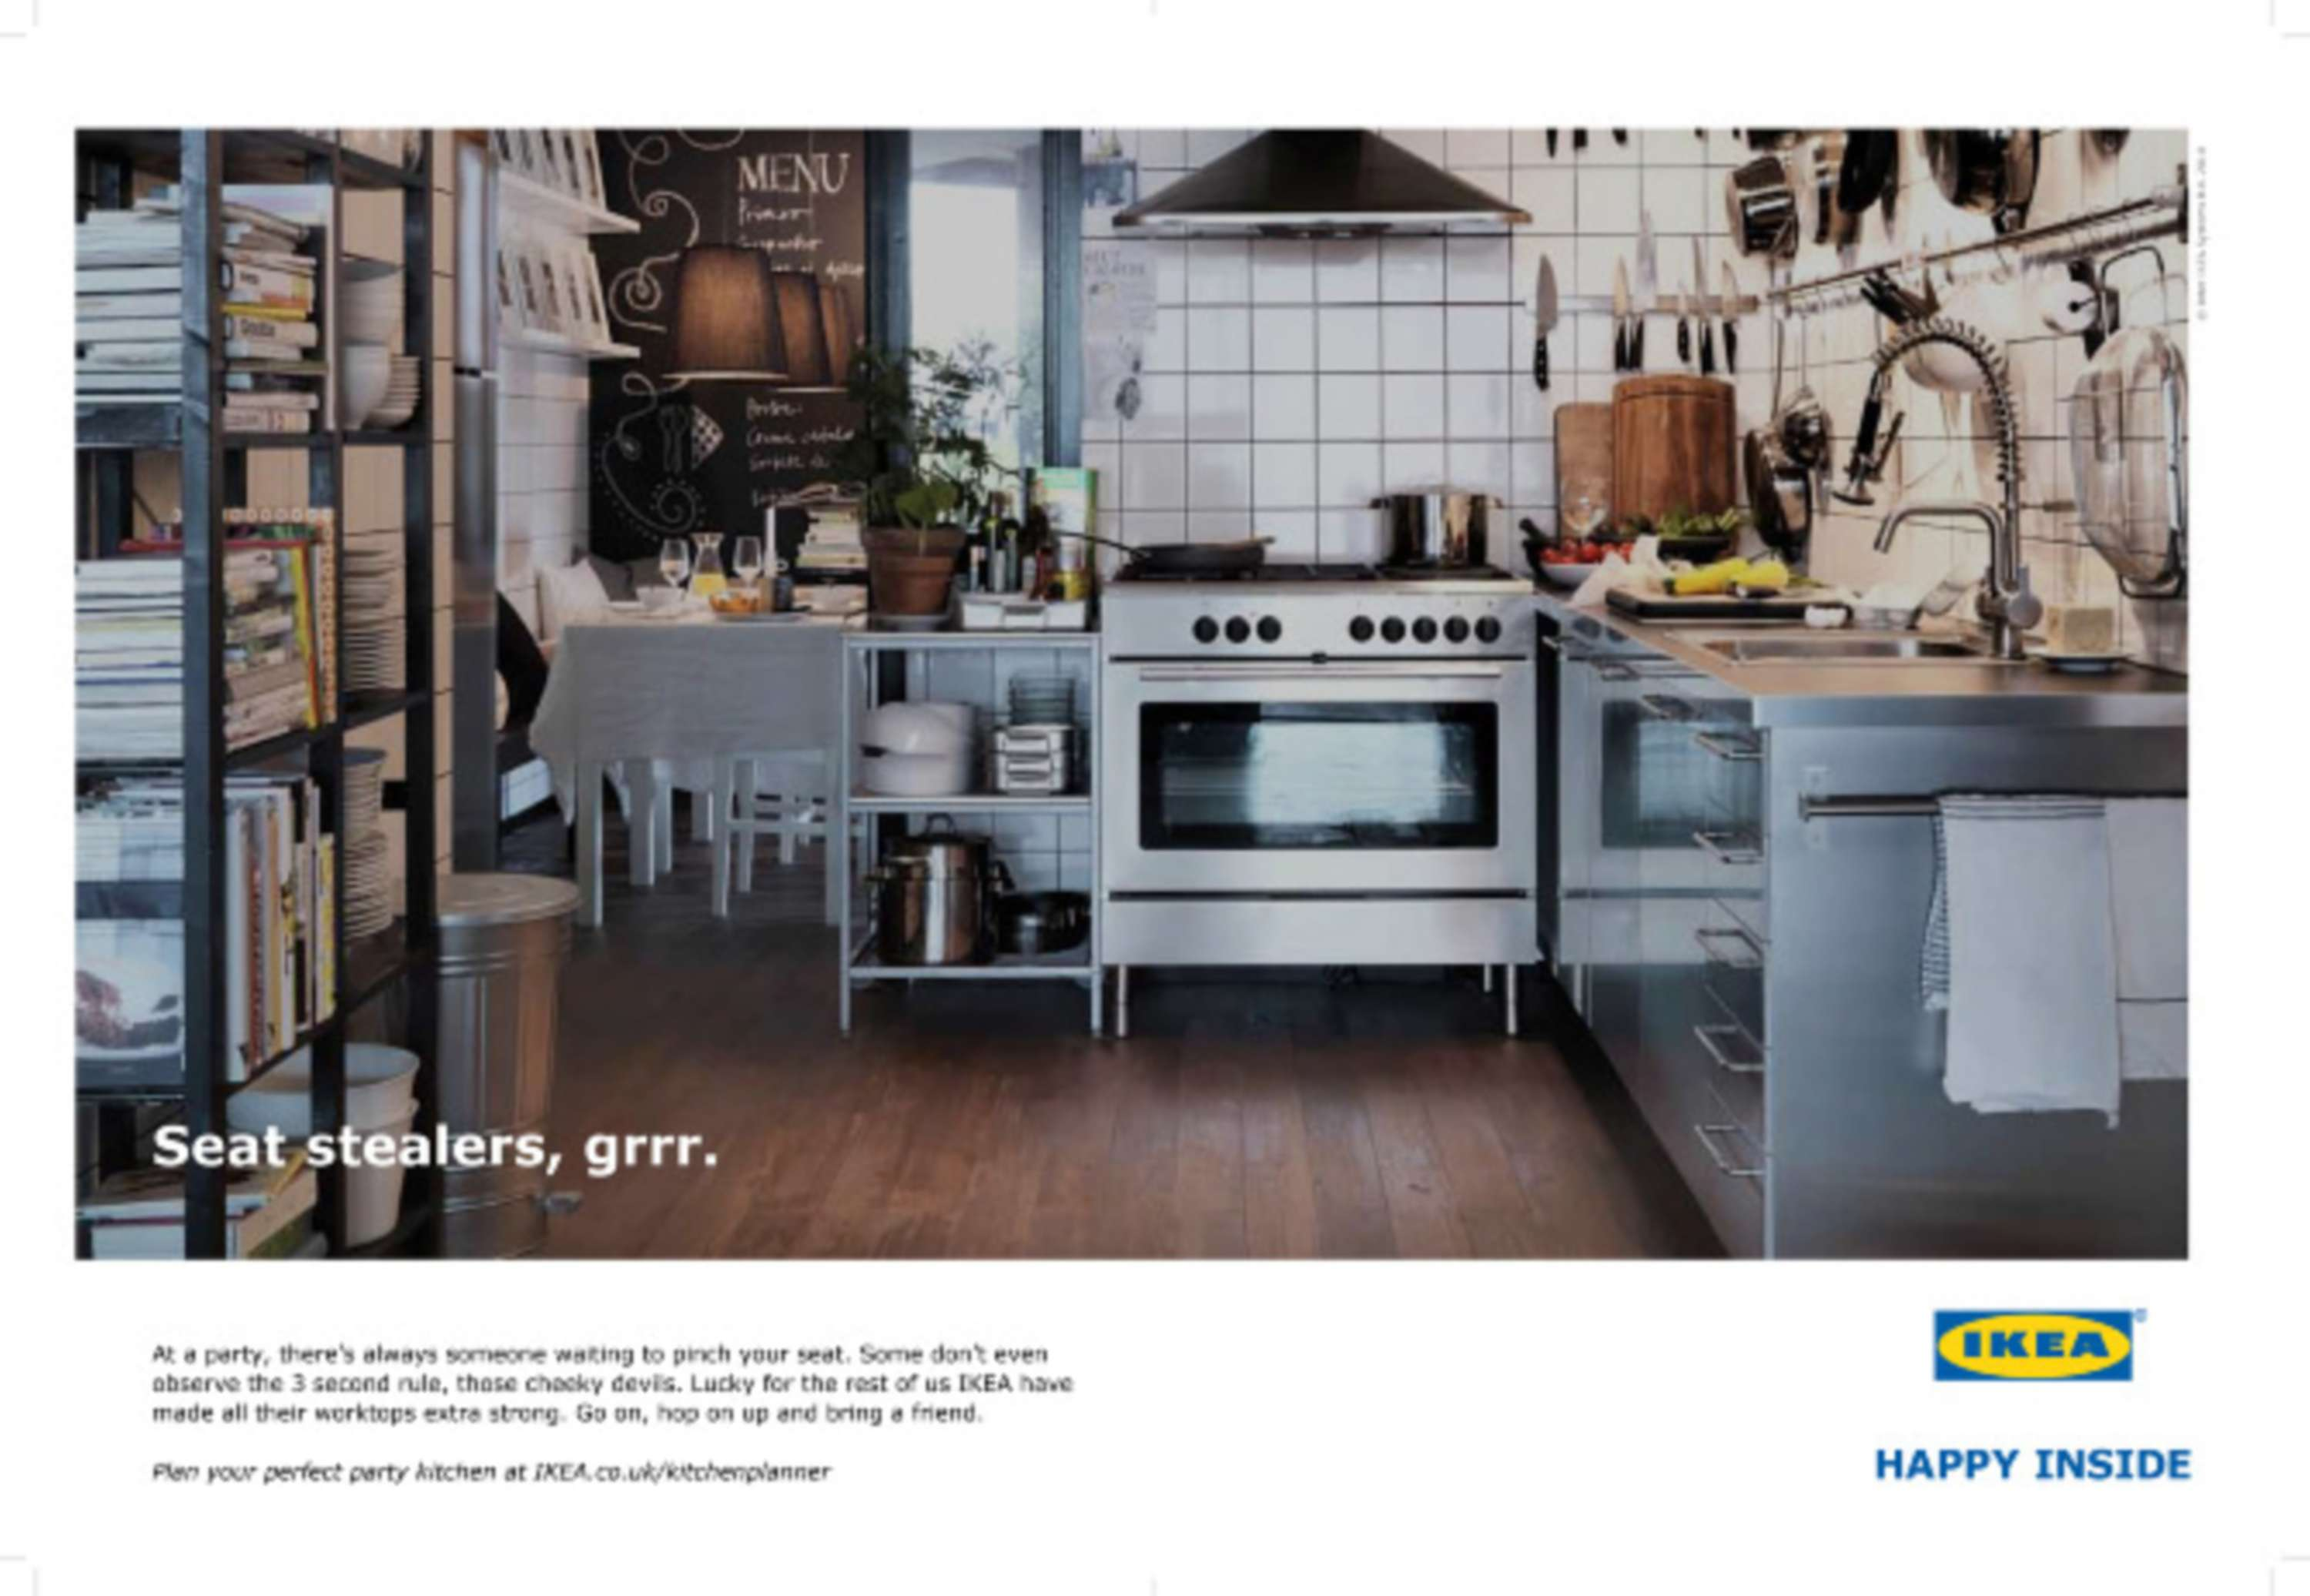 IKEA Happy Inside Campaign | The Dots